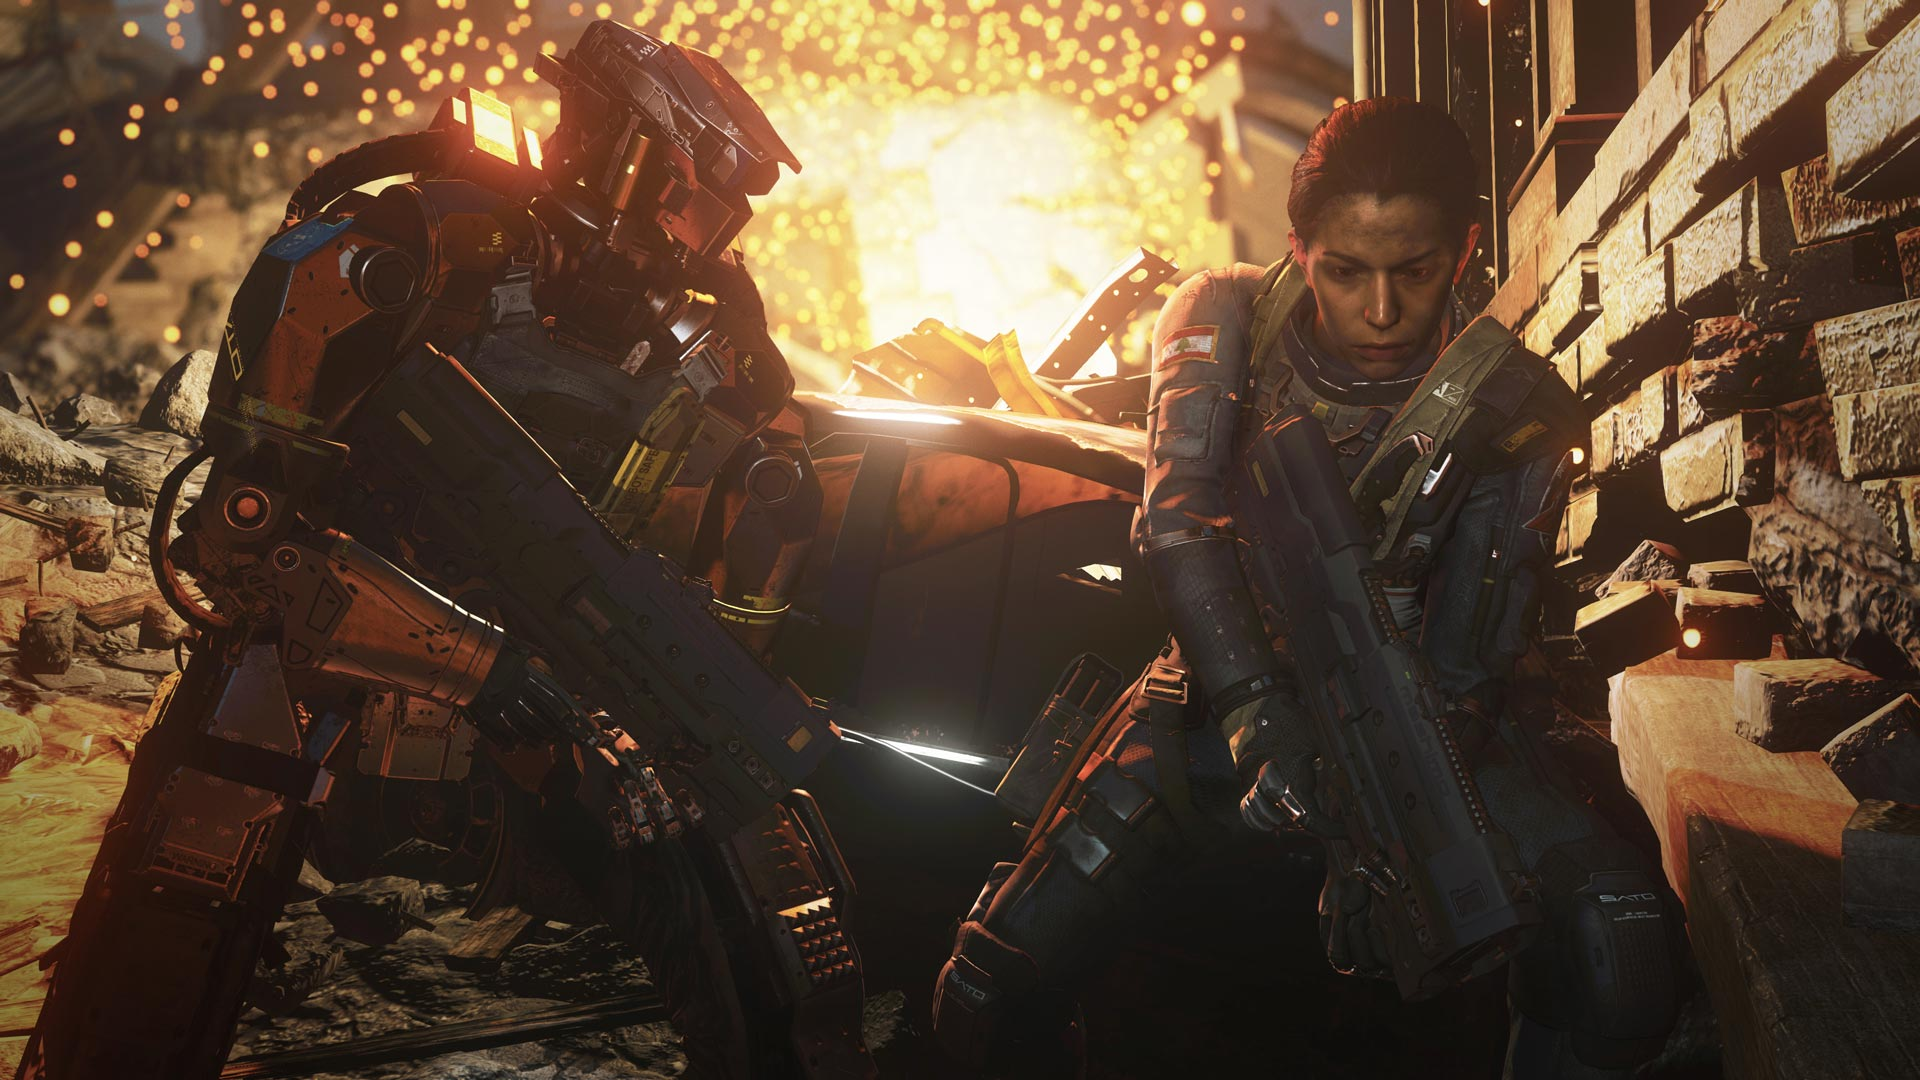 download call of duty infinite warfare digital deluxe edition singlelink iso cracked by reloaded cpy gog games release codex prophet plaza full version multi language free for pc 2017 gratis